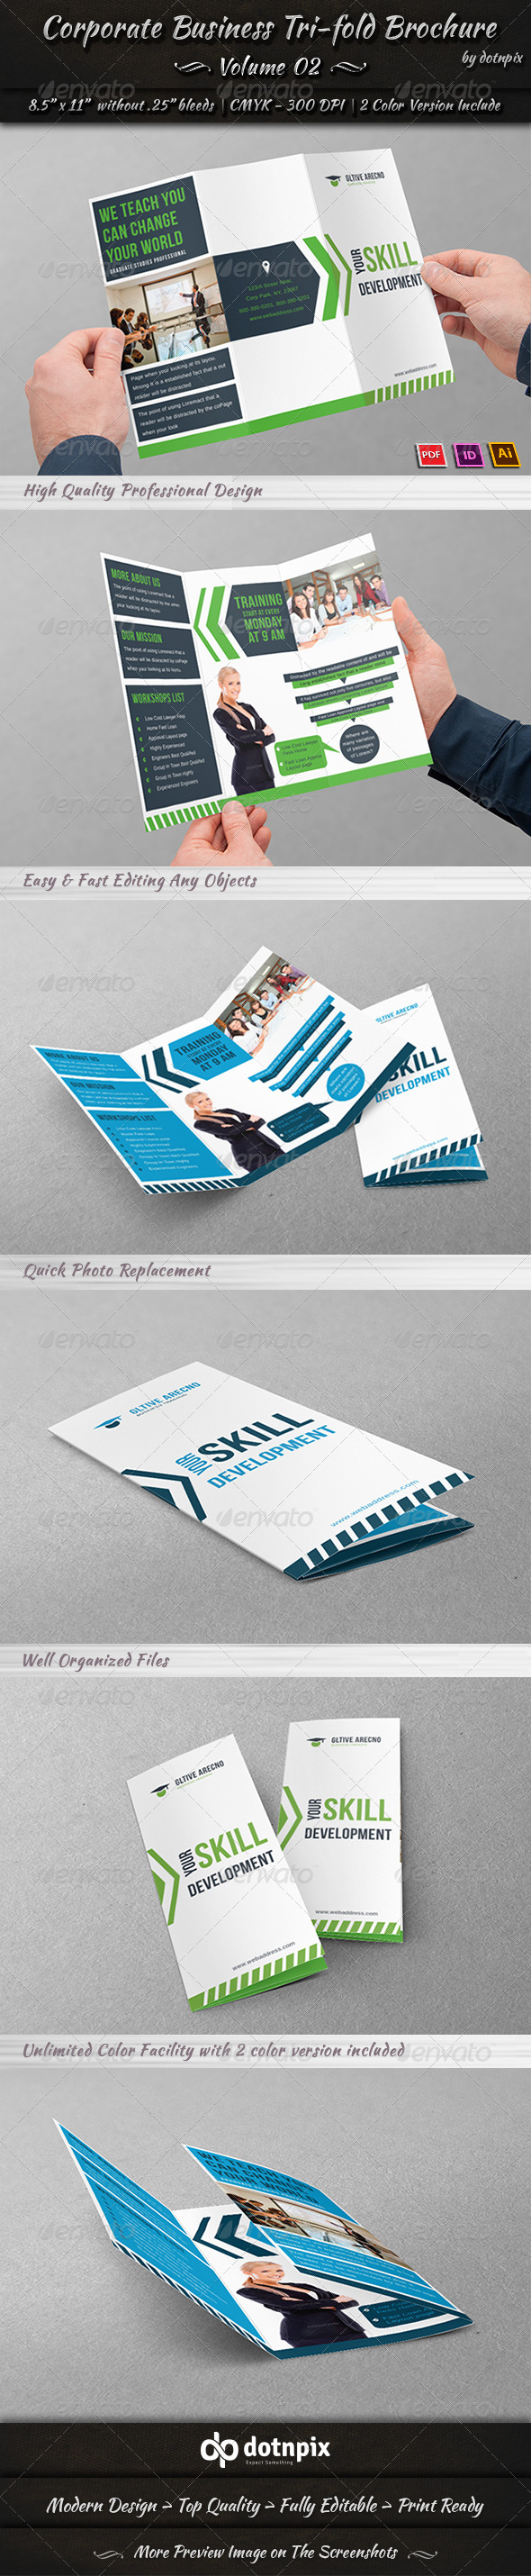 Corporate Business Tri-Fold Brochure Volume 2